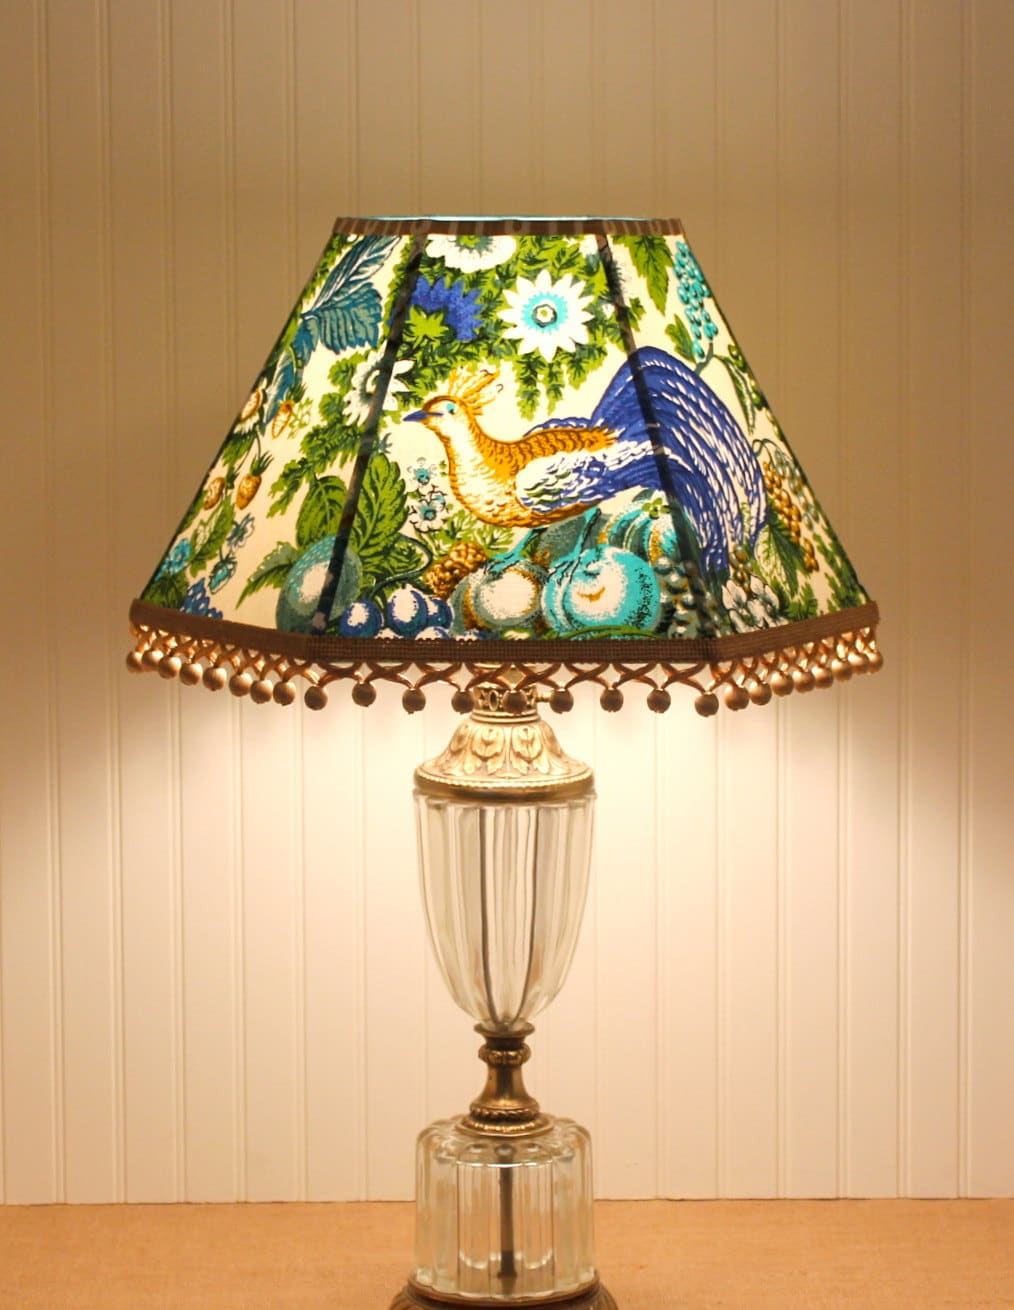 Blue Lamp Shade Vintage Lampshades Blue and Green Bird